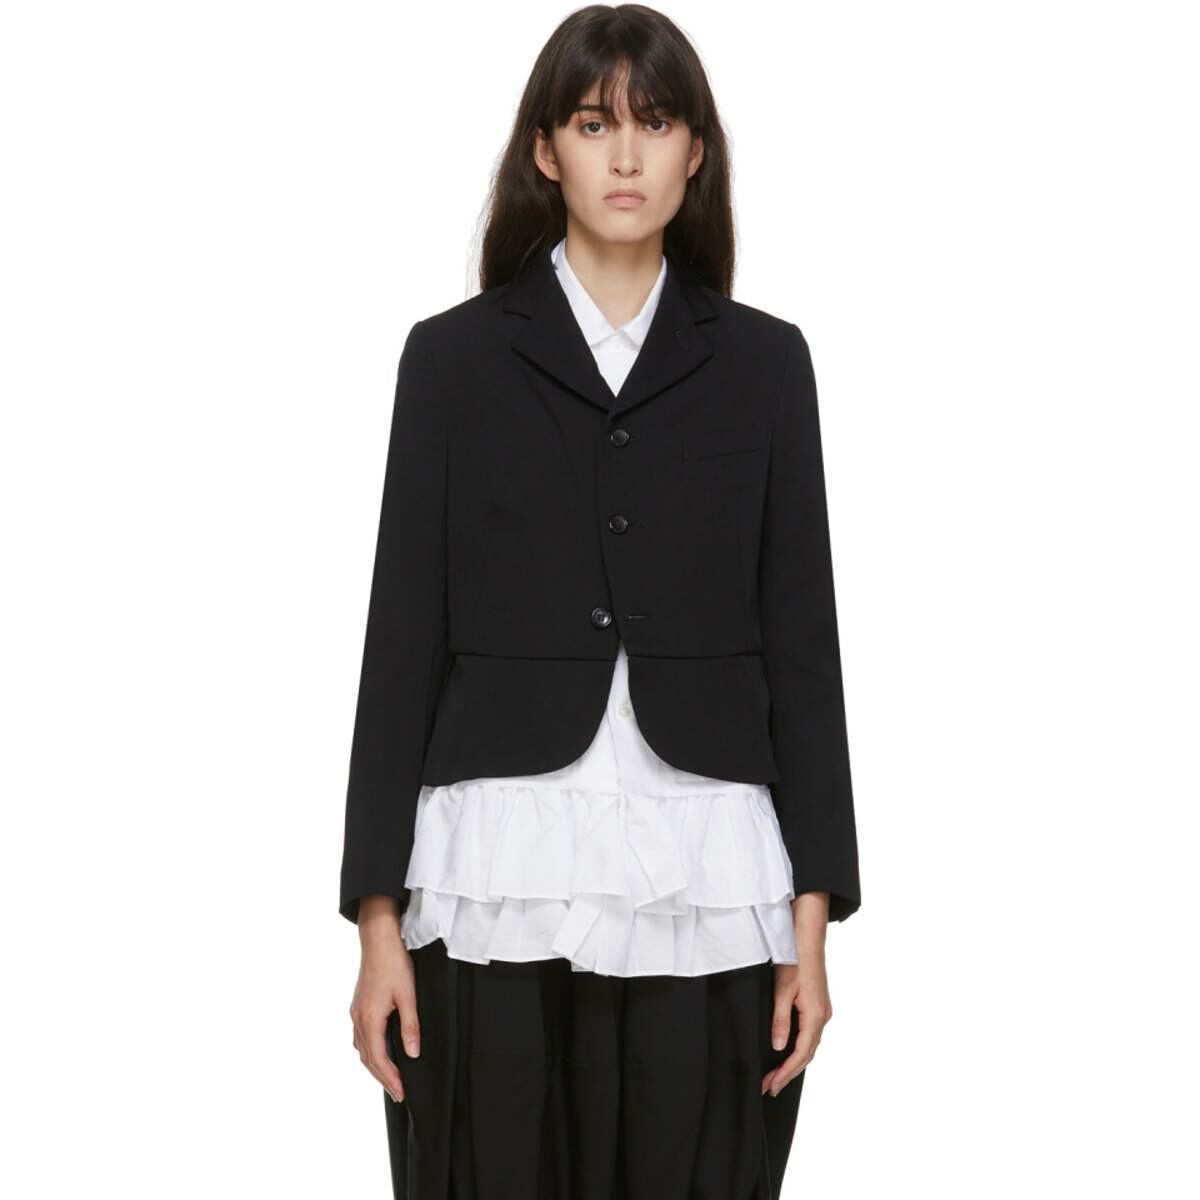 Comme des Garcons Girl Black Wool Tuxedo Blazer Ssense USA WOMEN Women FASHION Womens BLAZER